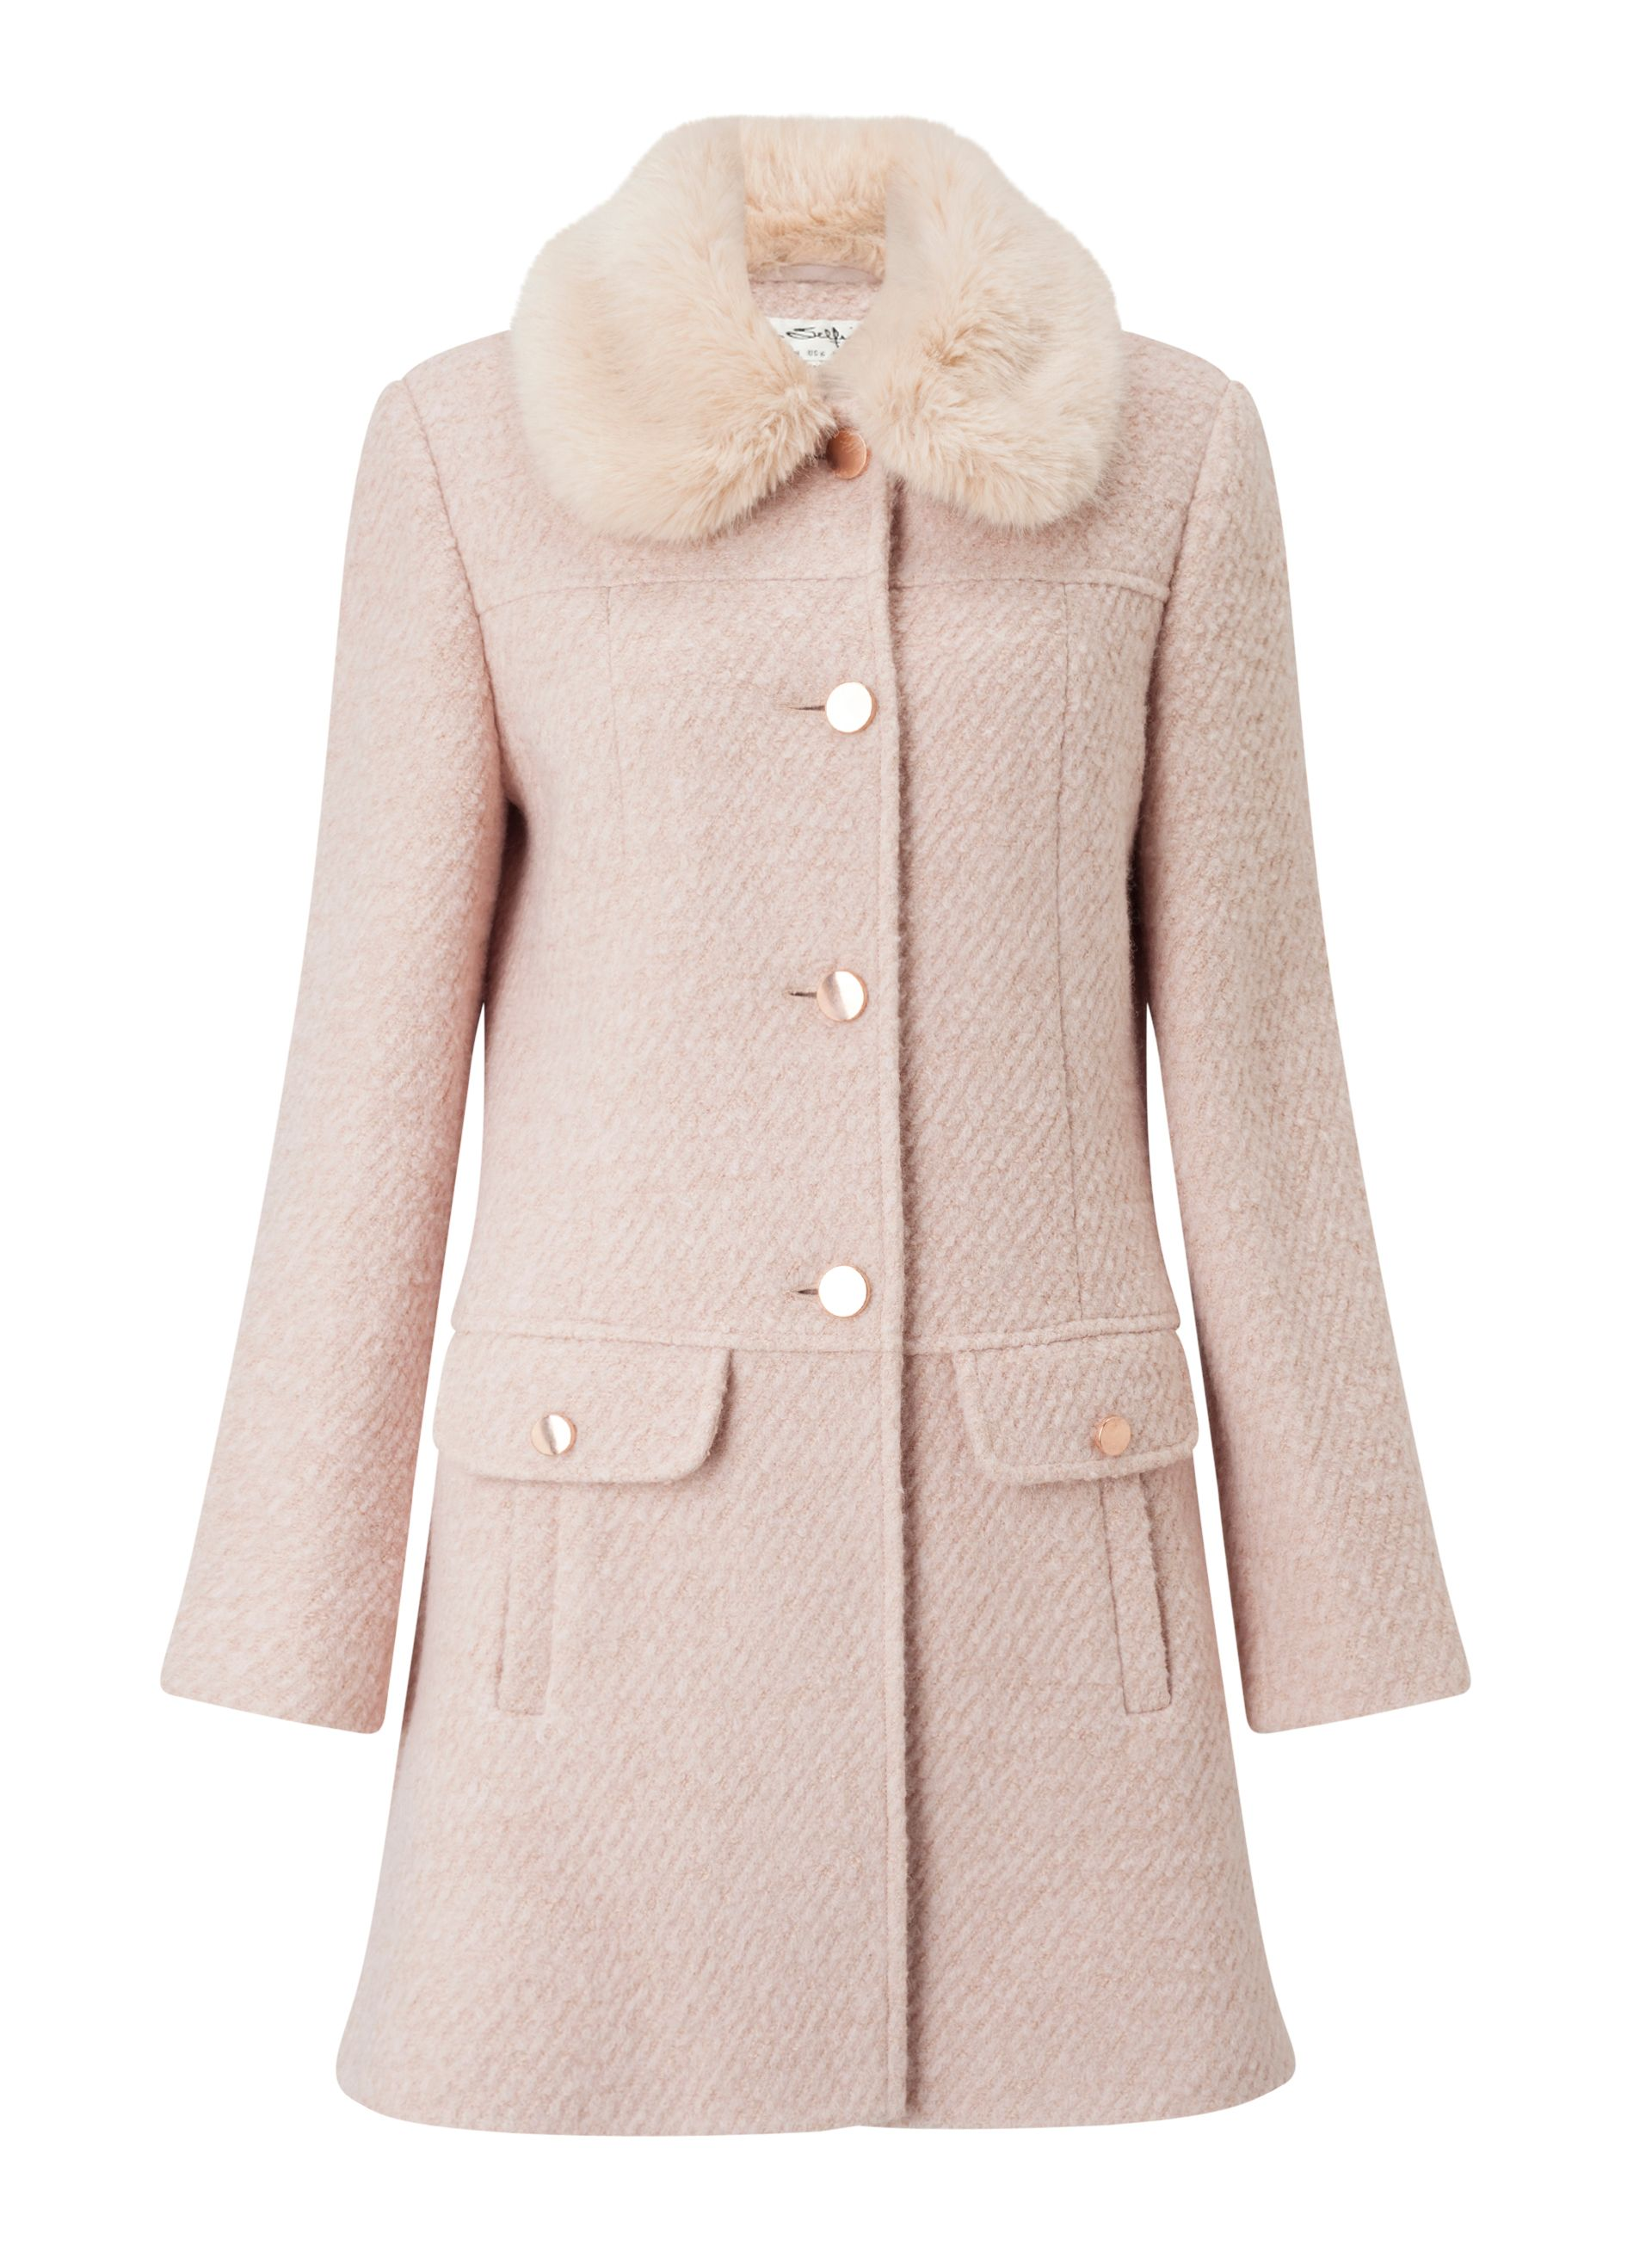 For example, a coat with just a fur collar is a good option for someone who doesn't want a full fur coat. Also, you can find a fur collar coat in any length, from a short jacket to a full length coat.